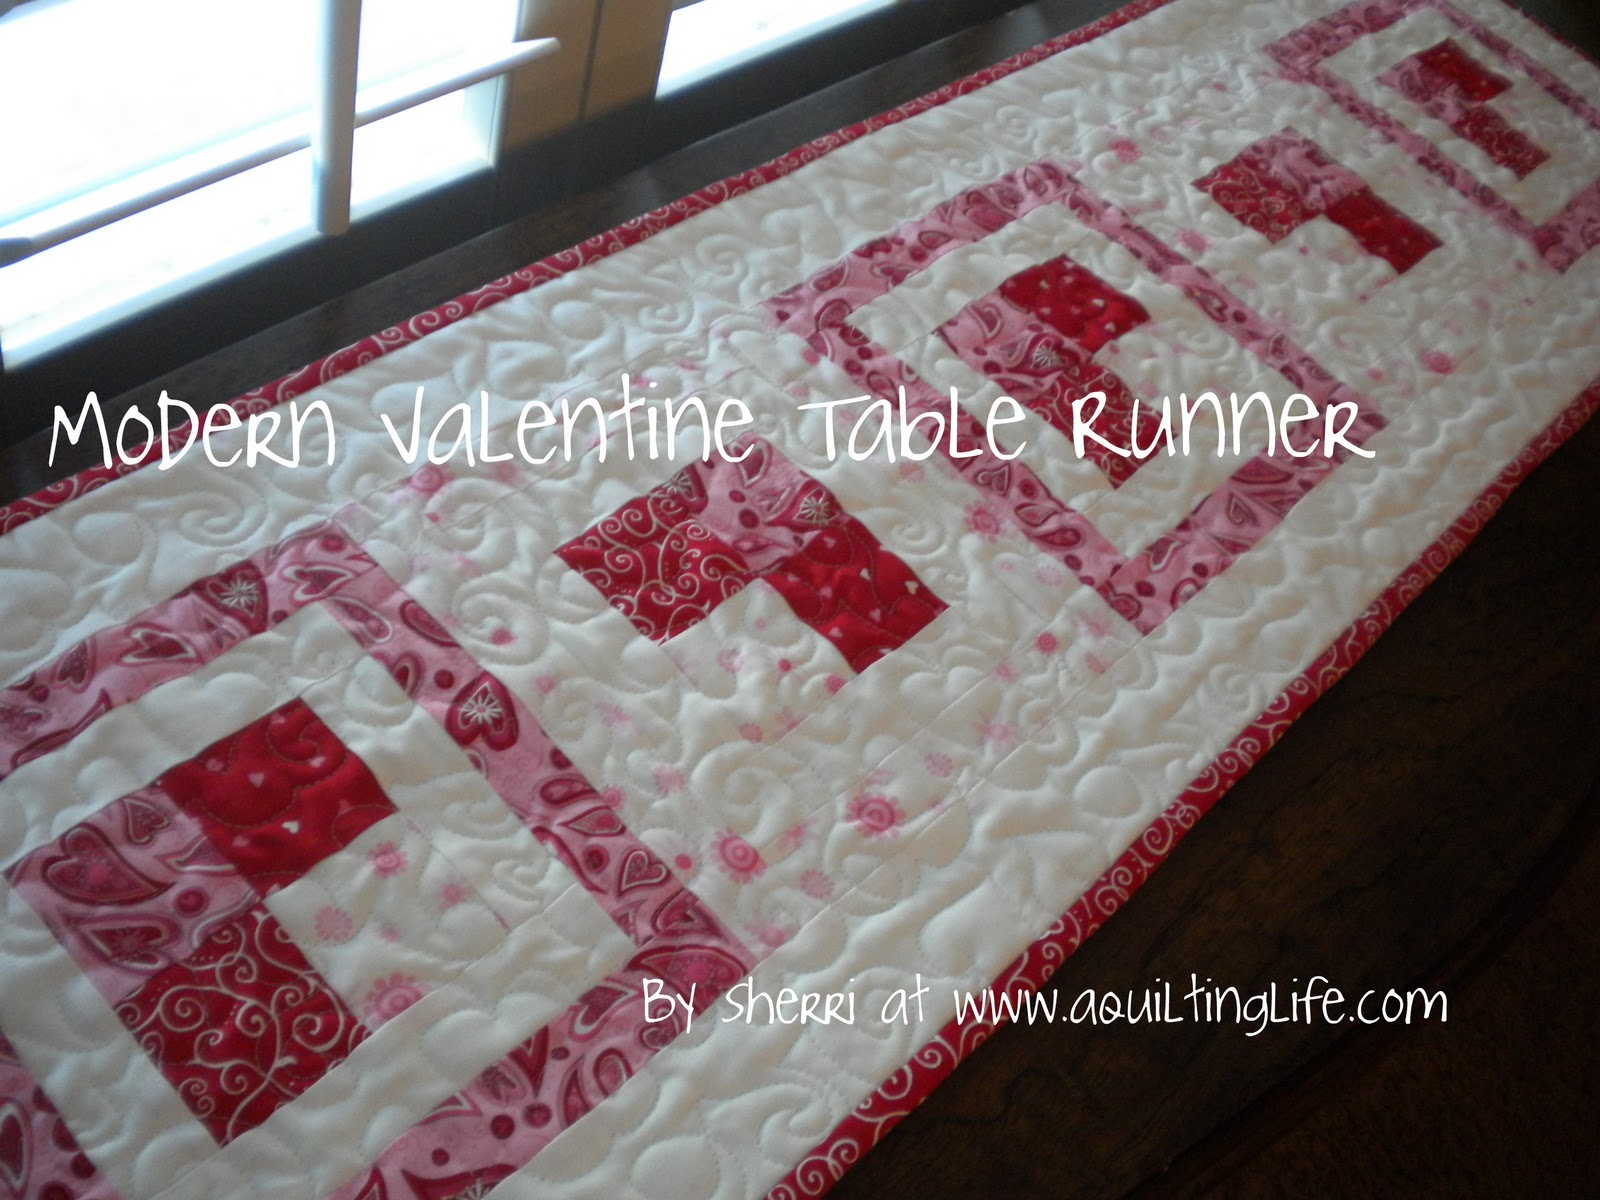 modern valentine table runner tutorial quilting life accent your focus super excited share with you today part the bemine blog tour this fun design that can dining mats designs